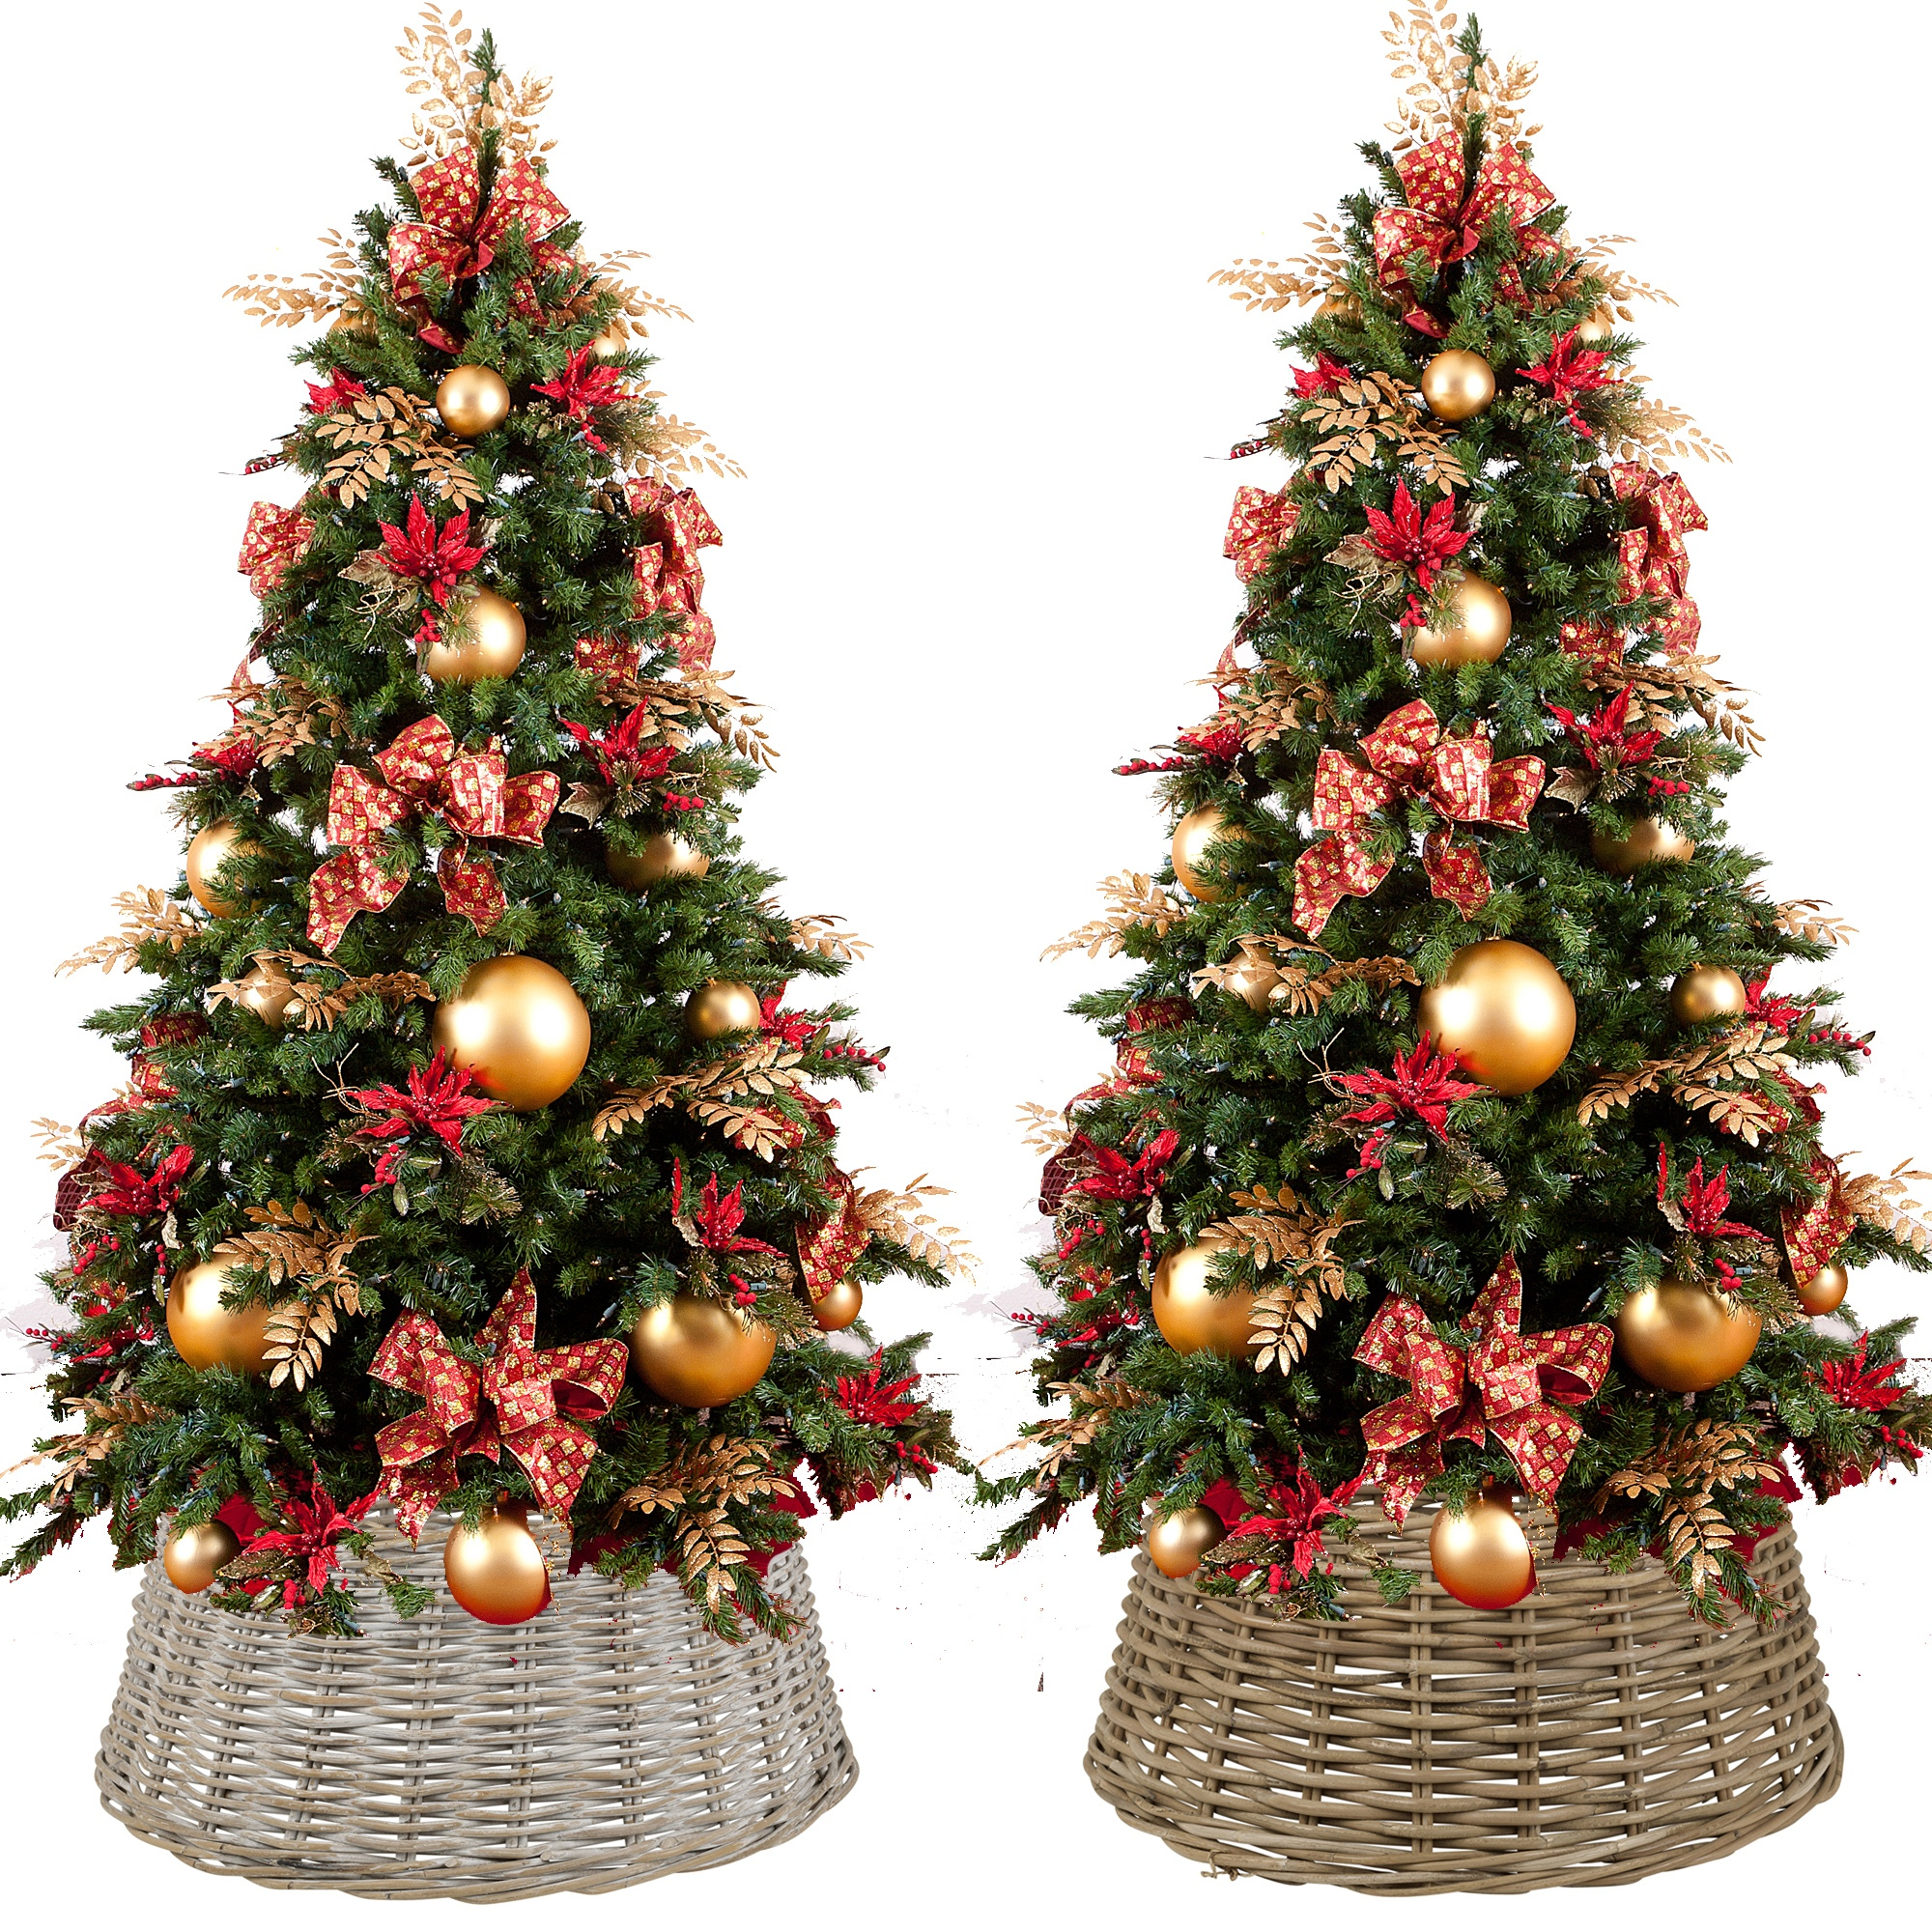 Large Willow Christmas Tree Skirt Xmas Rattan Wicker Natural Base Cover Stand Ebay